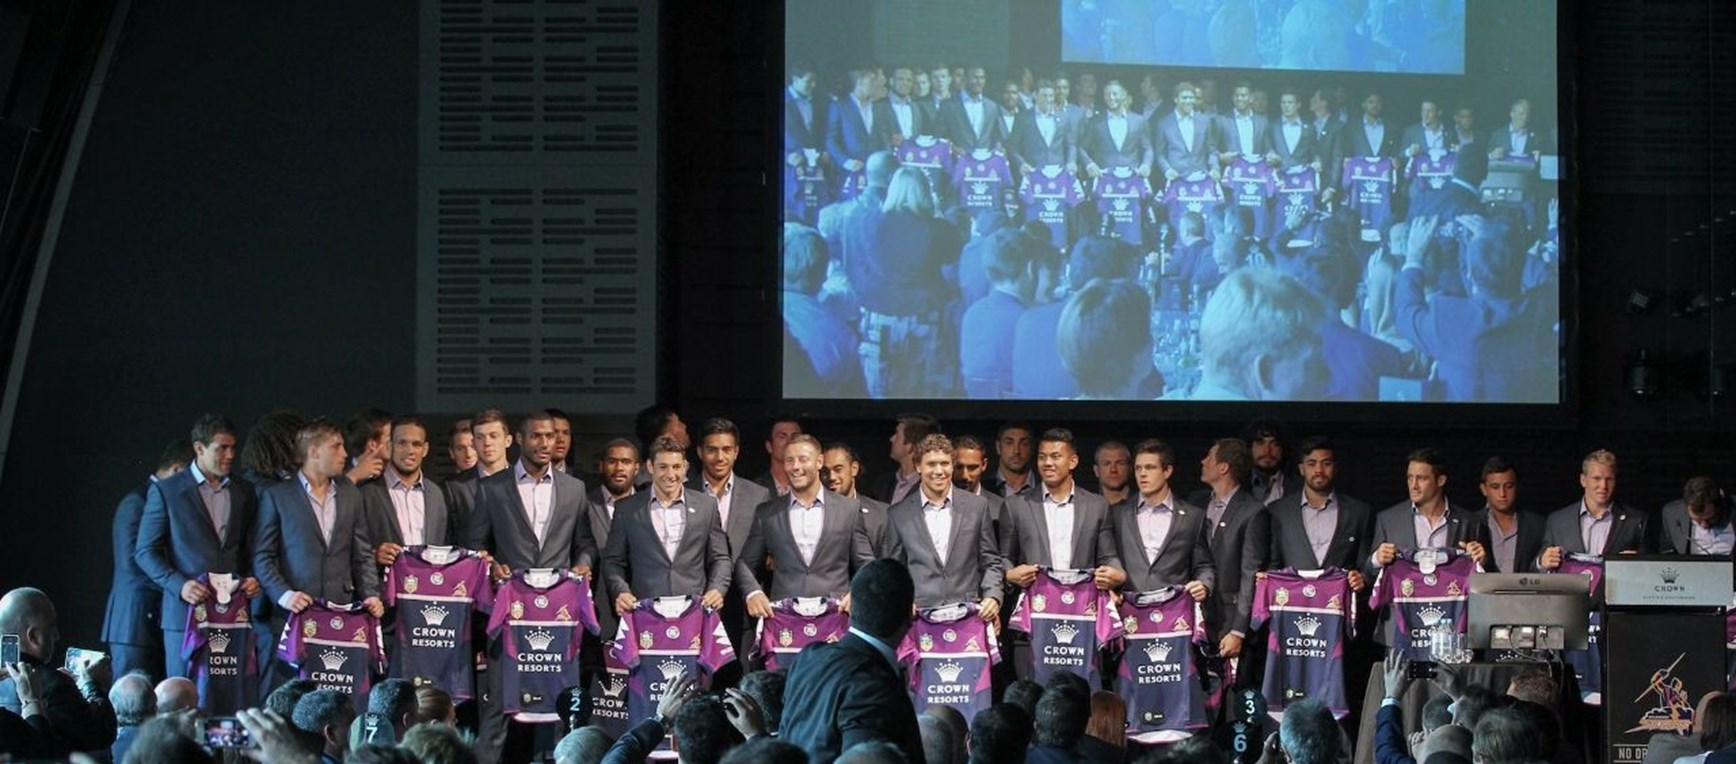 In pictures: 2015 Season Launch